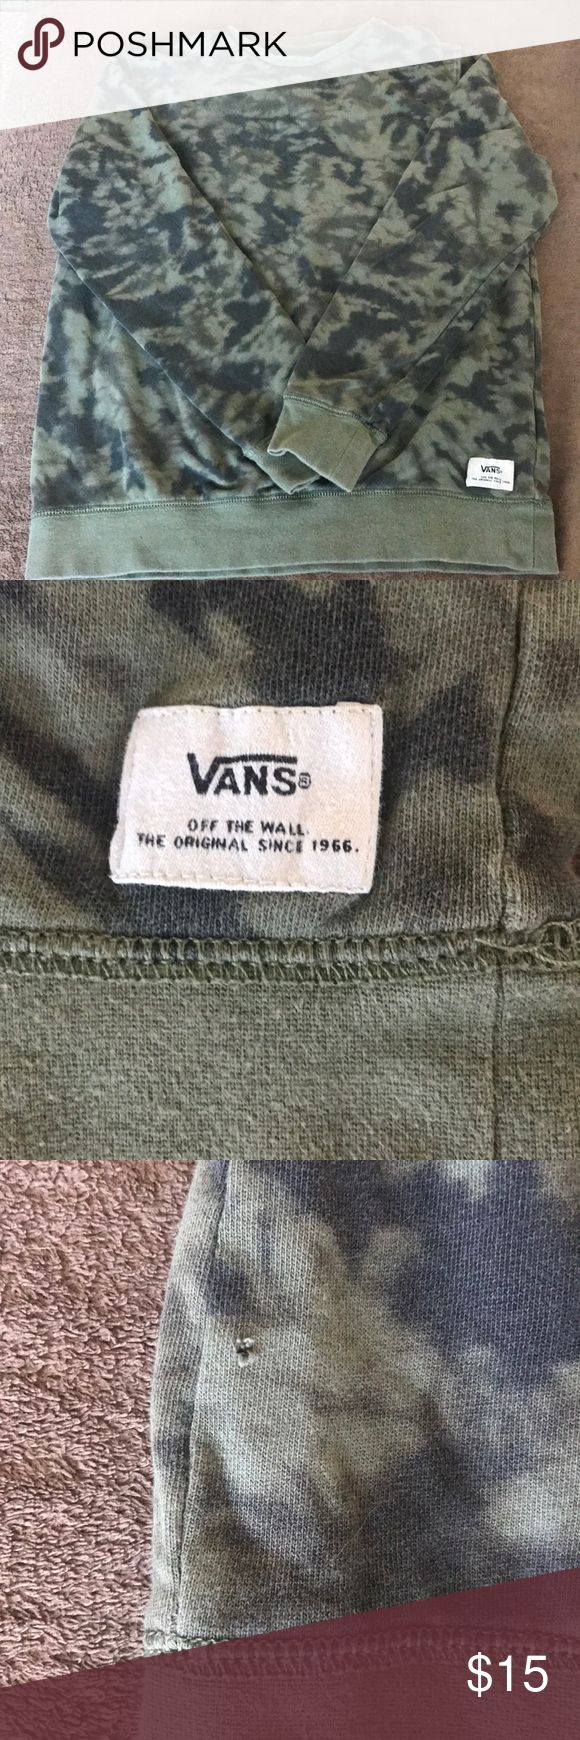 Vans camo pullover 😎 year round wear!  Vintage look and feel.  Small hole front right bottom near seam; light stain back right side—see pics.  Reflects in price. Vans Shirts Sweatshirts & Hoodies